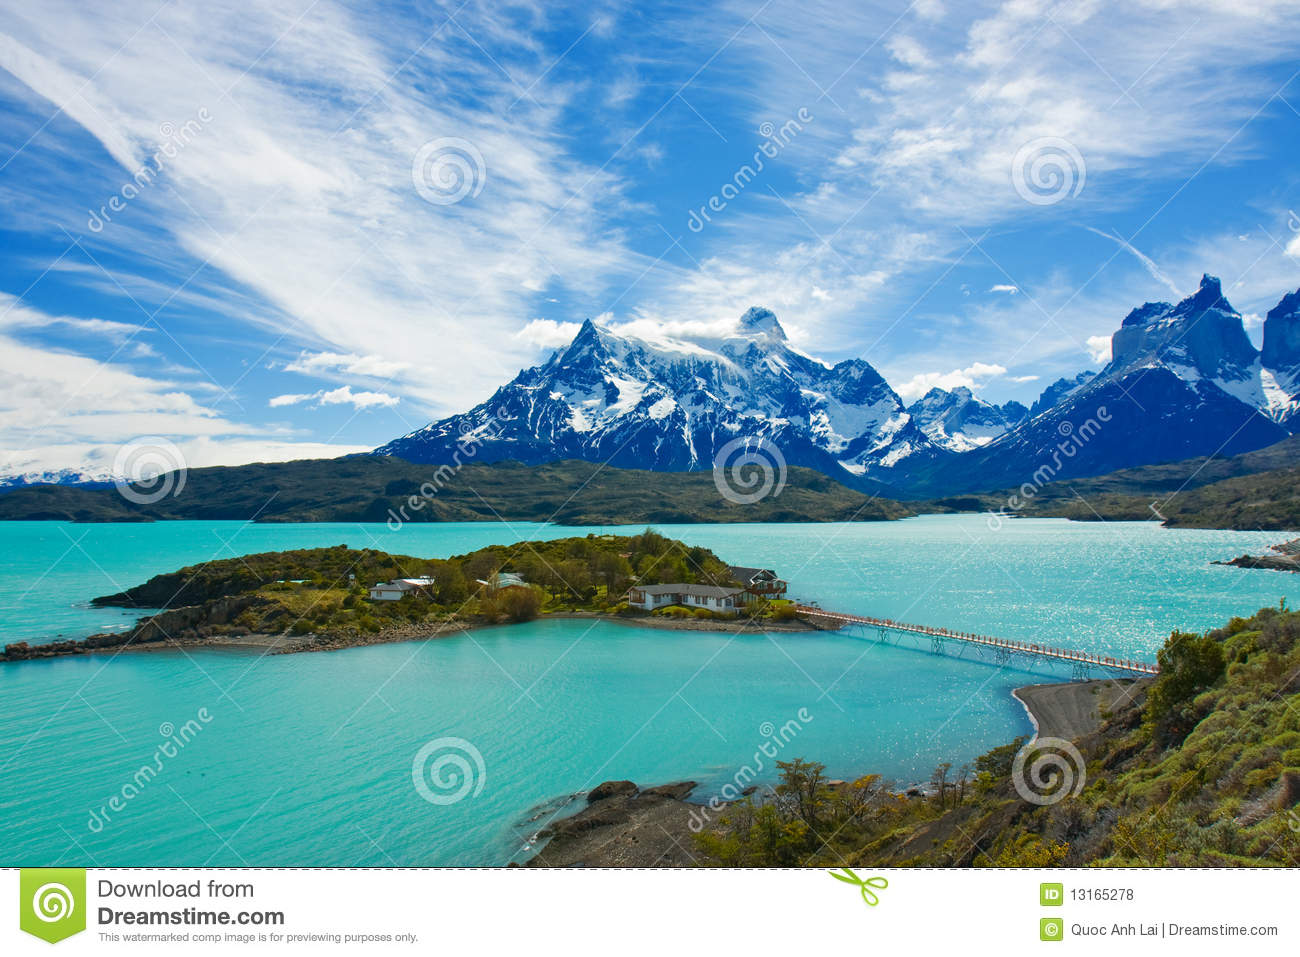 Nationalpark Torresdel Paine